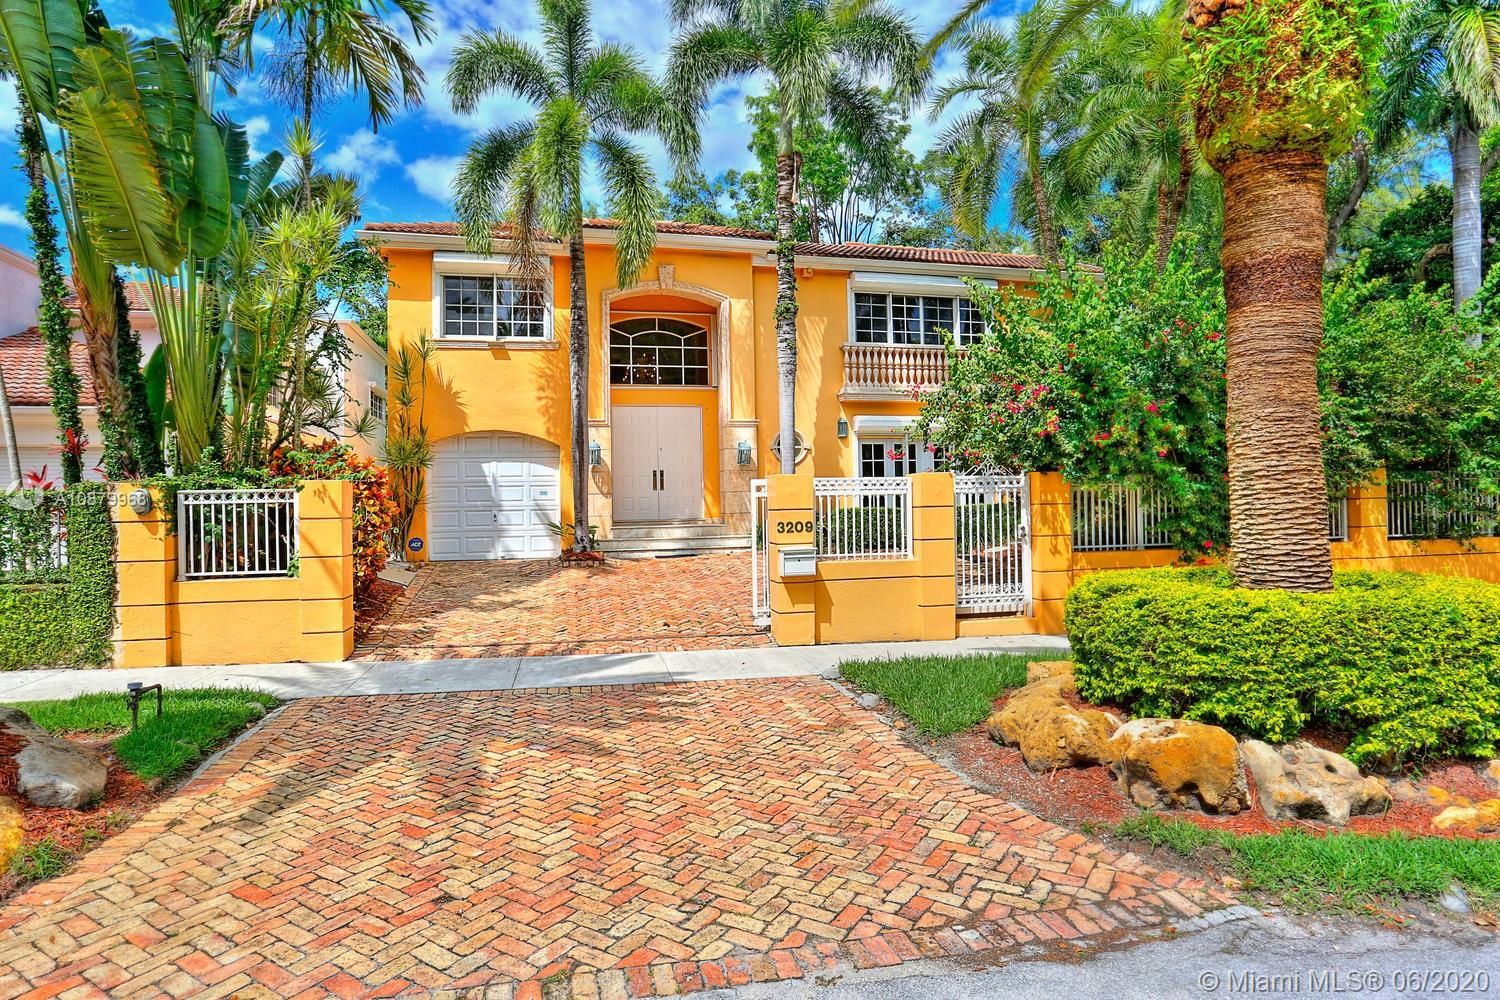 Lovely European-style villa in prestigious North Coconut Grove. Walk to bayfront parks & marinas, yet not in a flood-zone (located at one of the highest sea-level elevations in South Florida). Walled & gated residence with light-filled living spaces, volume ceilings, marble flooring & stunning staircase with modern glass railing. Formal living, dining and expansive family room. Custom kitchen features wood cabinetry, granite countertops, all new appliances & separate breakfast area. Expansive master suite & luxurious marble bath with frameless glass shower & soaking tub. French doors open to ultra-private, lush tropical garden with ample room to add a pool. Close to the Grove village center's boutiques & cafes and minutes to downtown, Brickell, MIA, Key Biscayne and the Beaches.